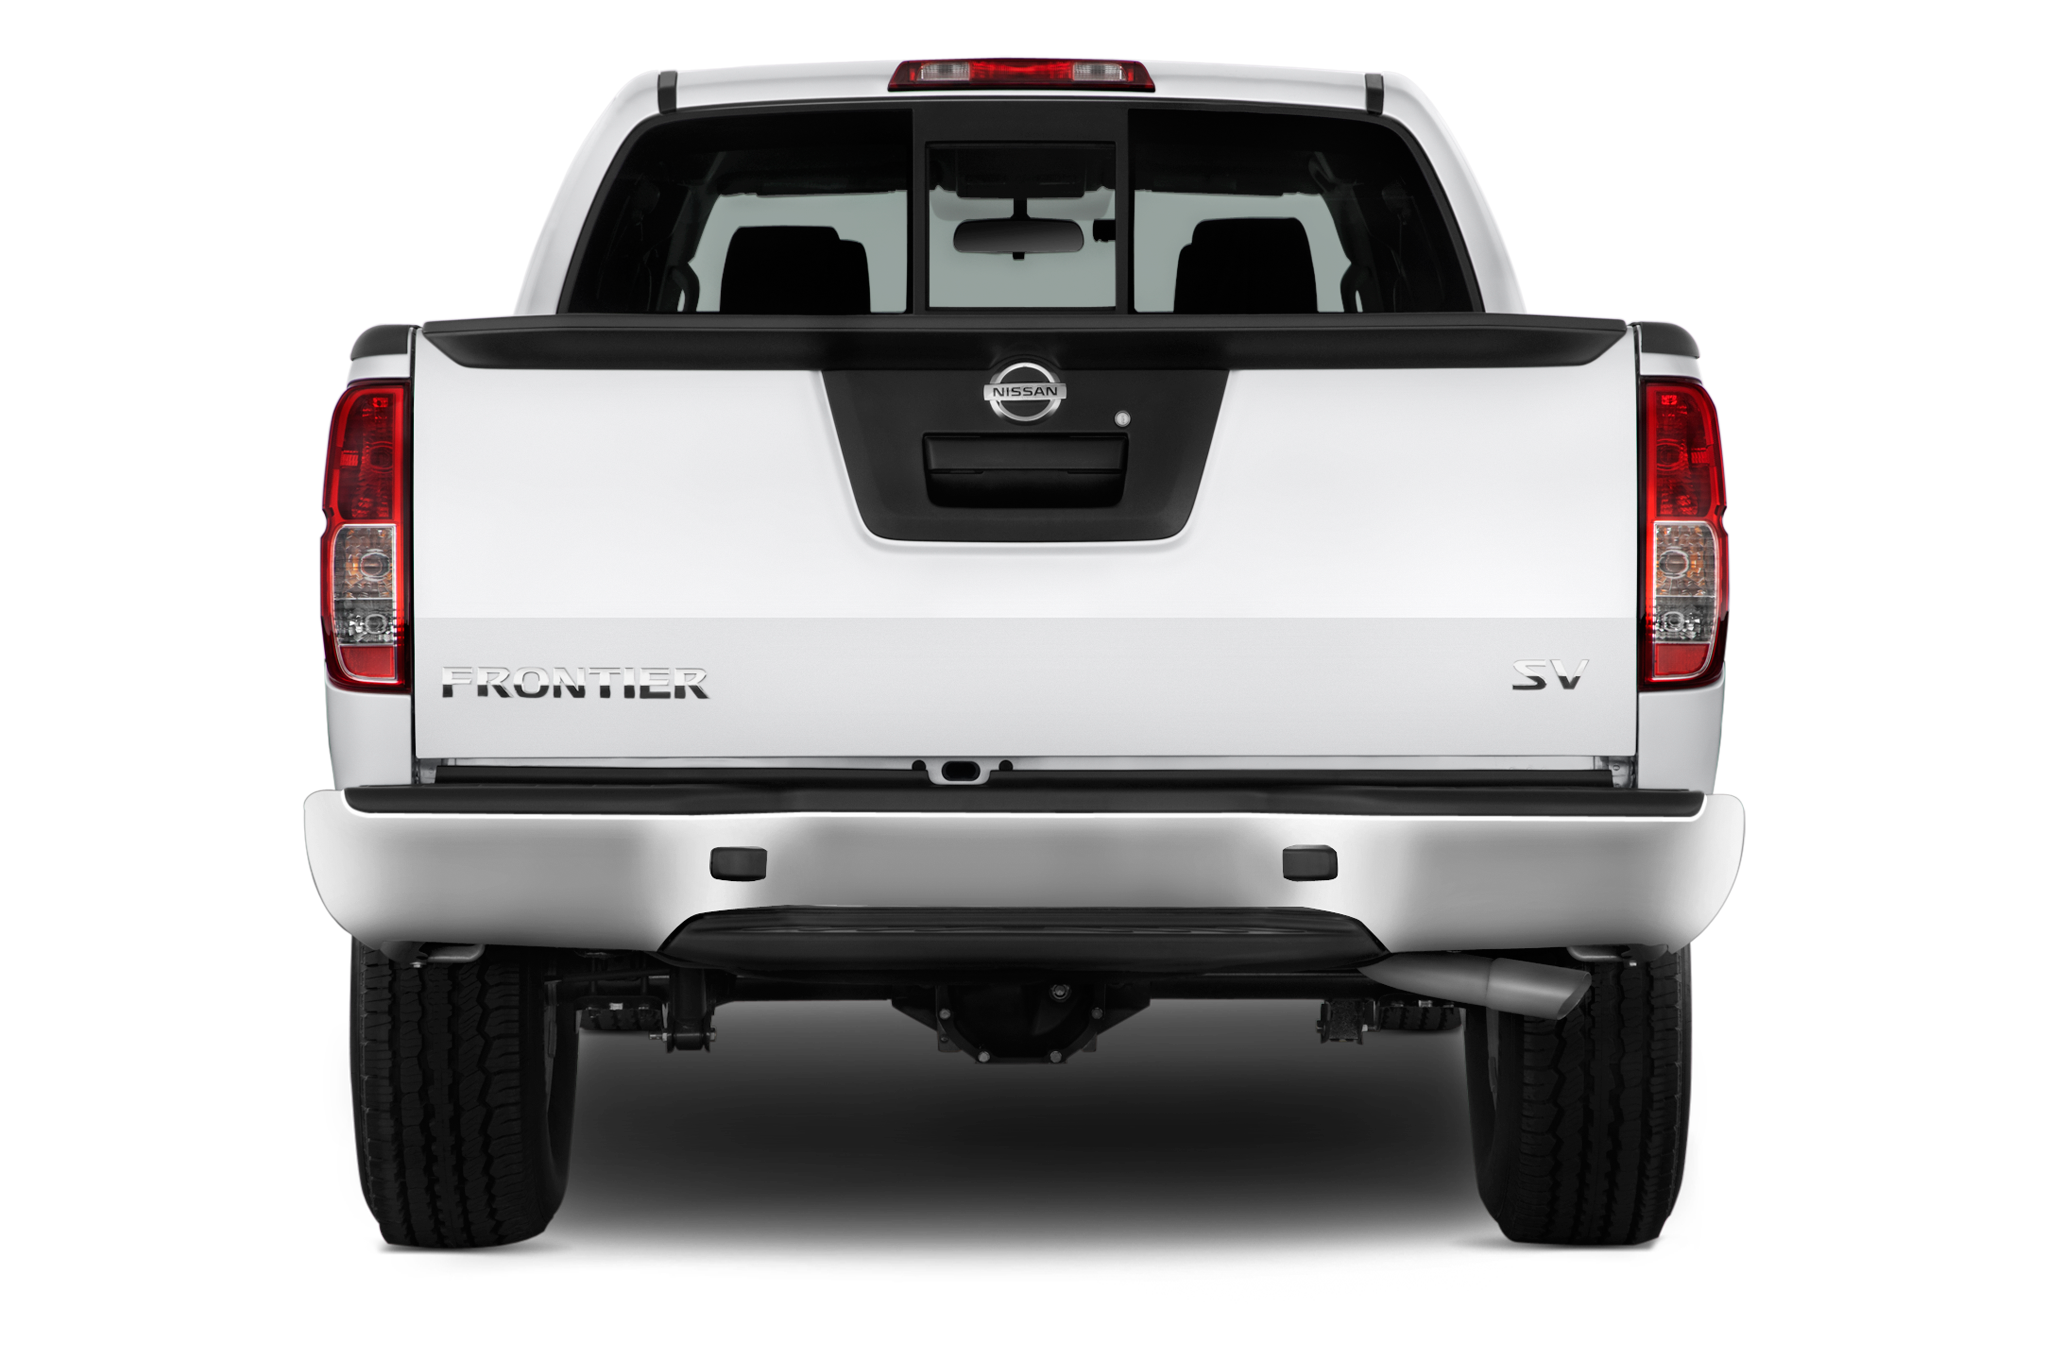 Nissan Frontier Crew Cab >> 2015 Nissan Frontier, Xterra to Cost $18,850 and $24,520, Respectively